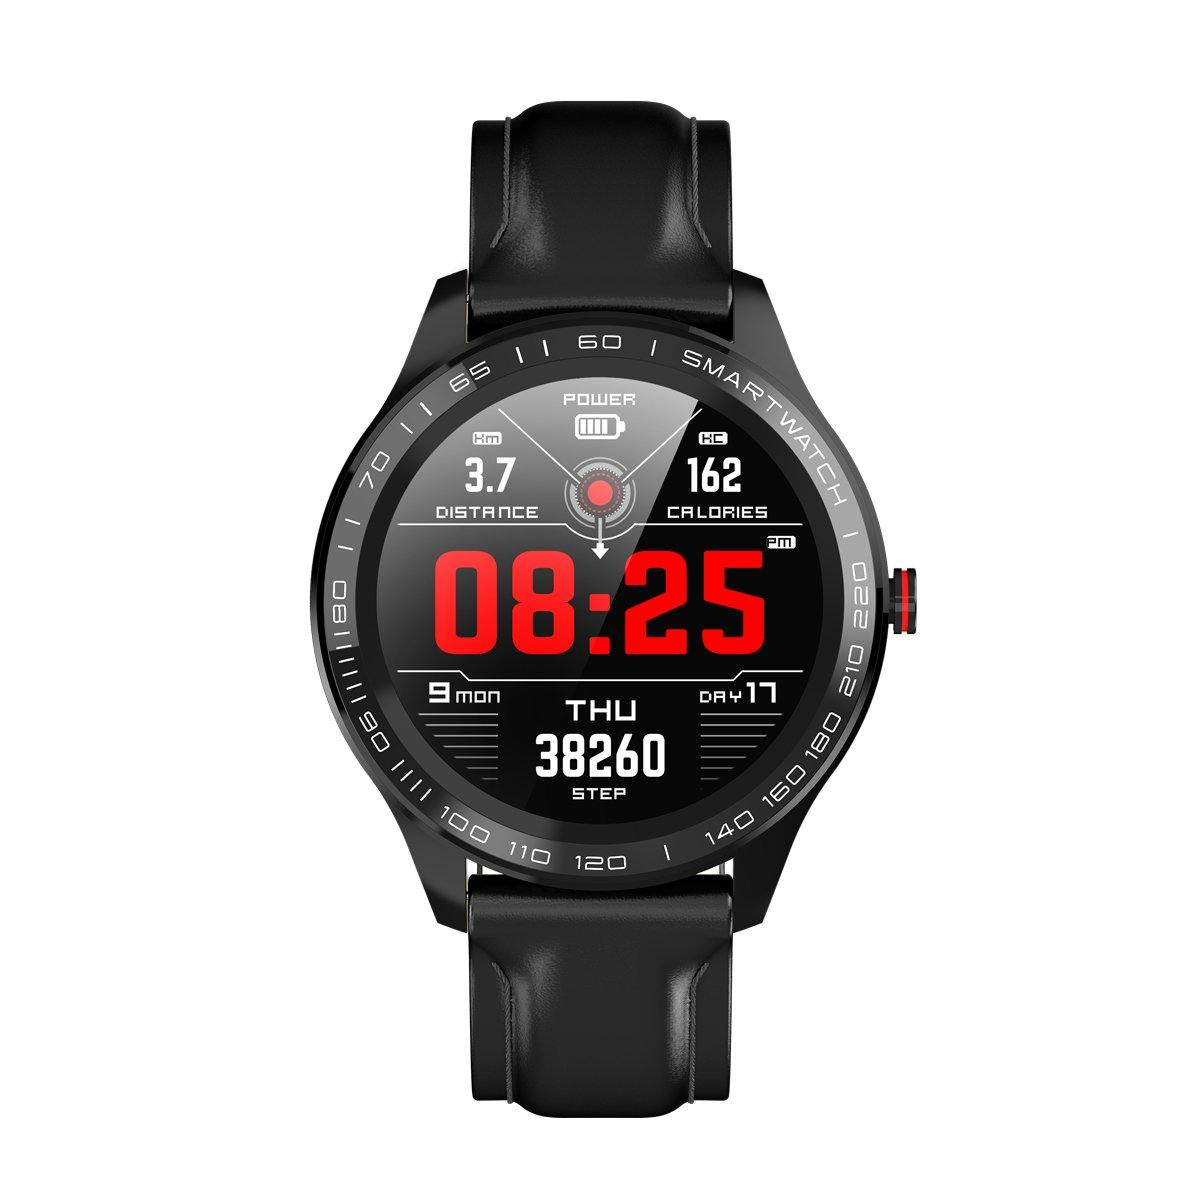 Microwear L9 Fitness/Smartwatch - Black Leather